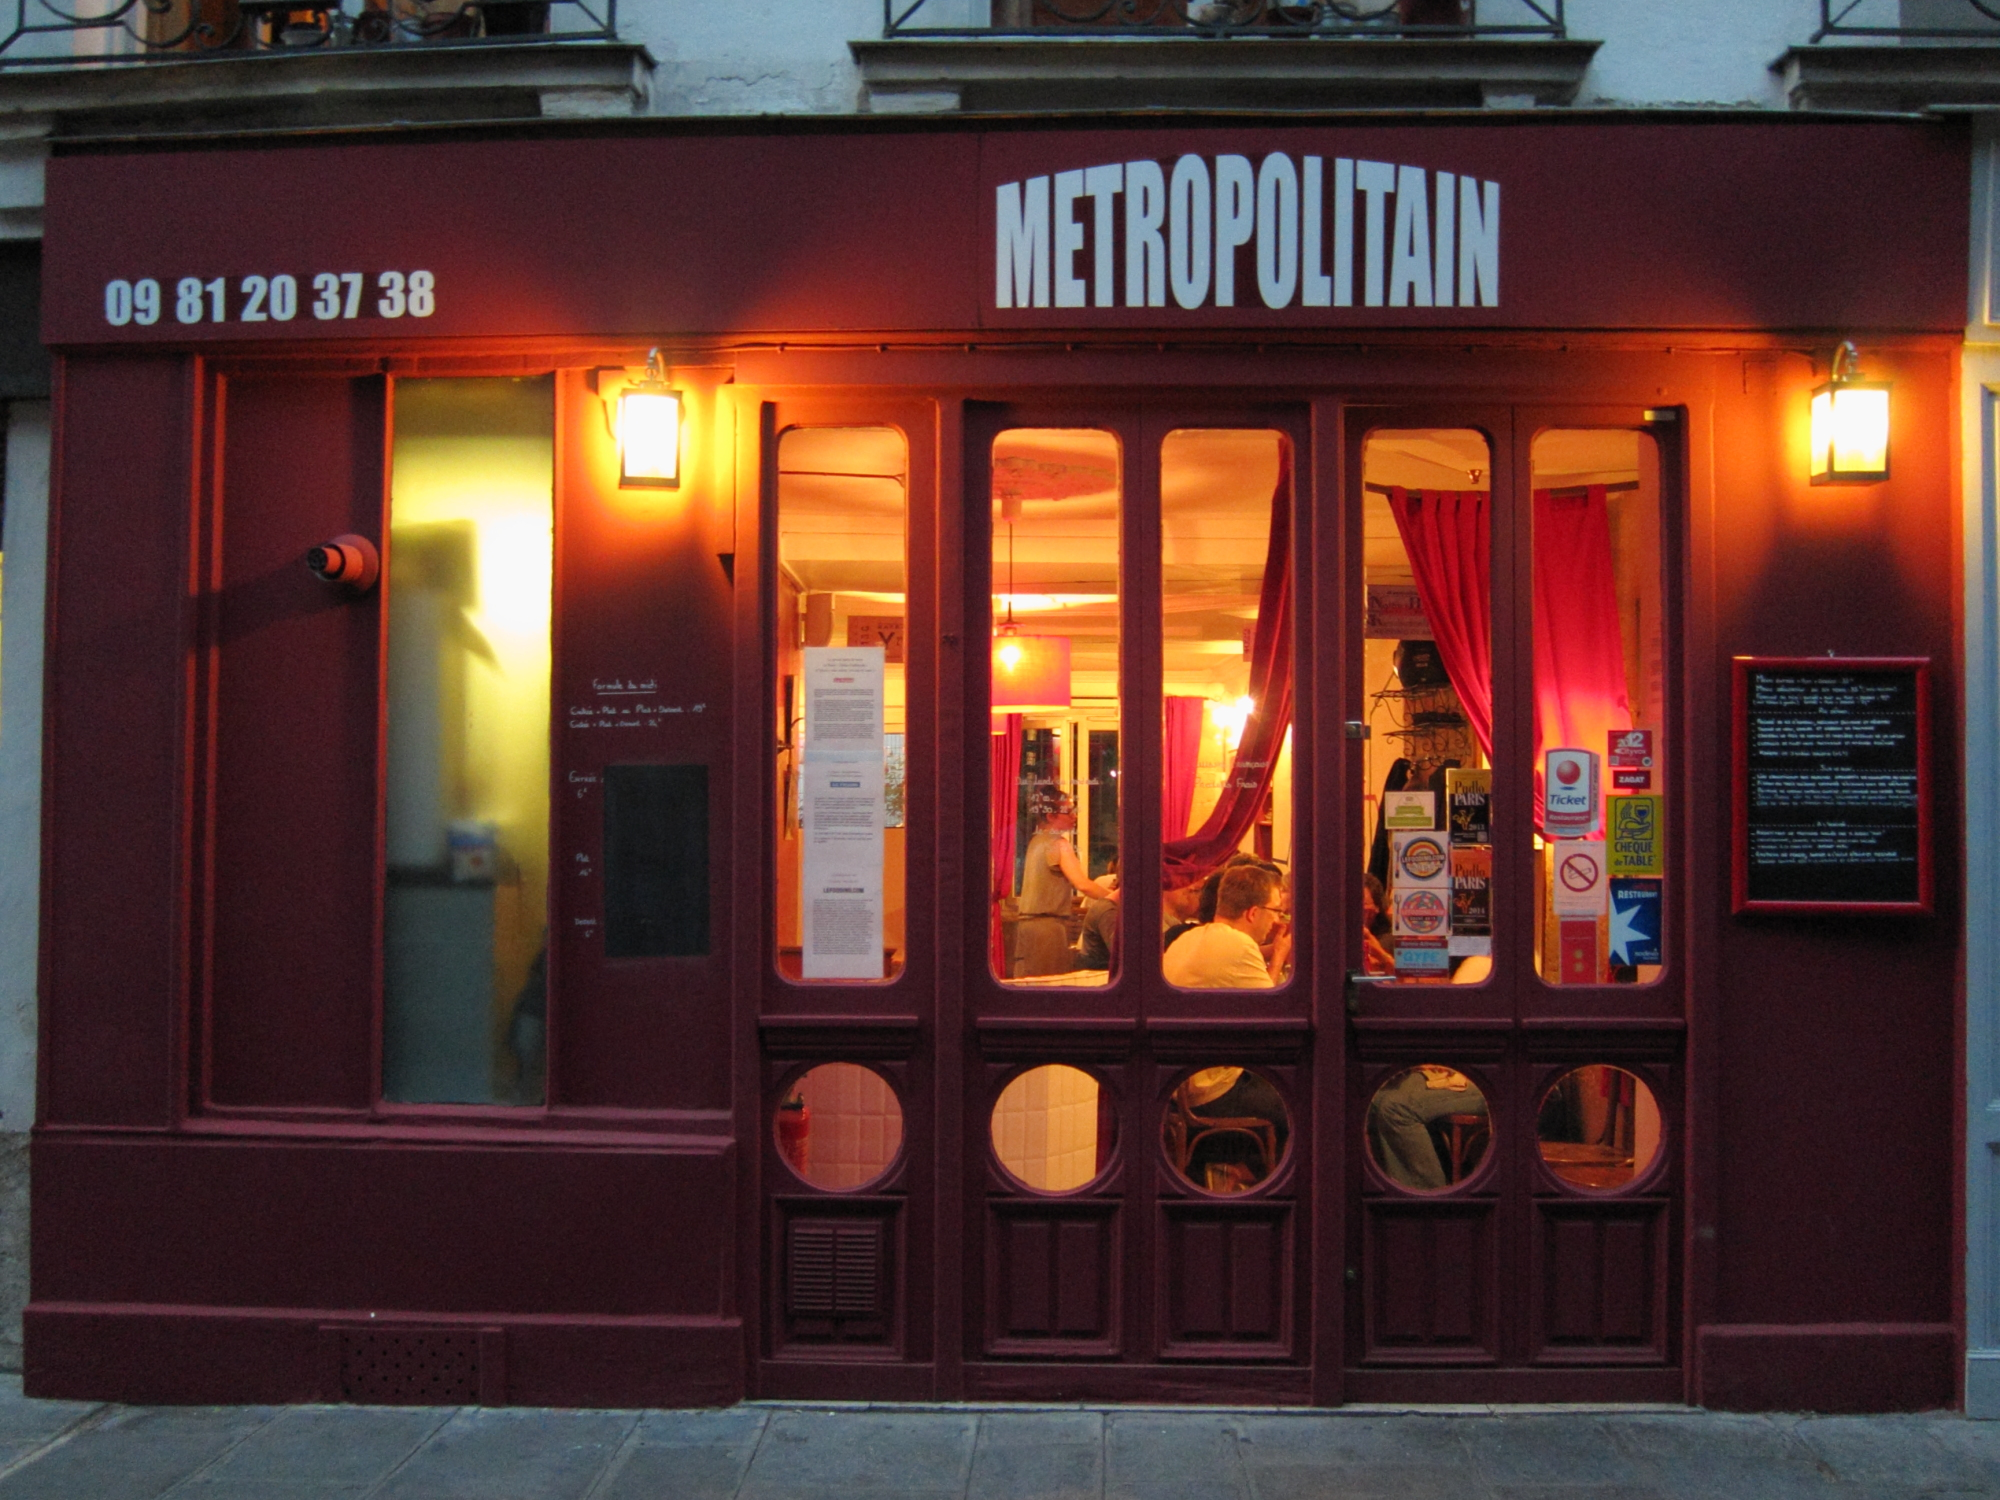 Metropolitan, just down the street from my Paris apartment.